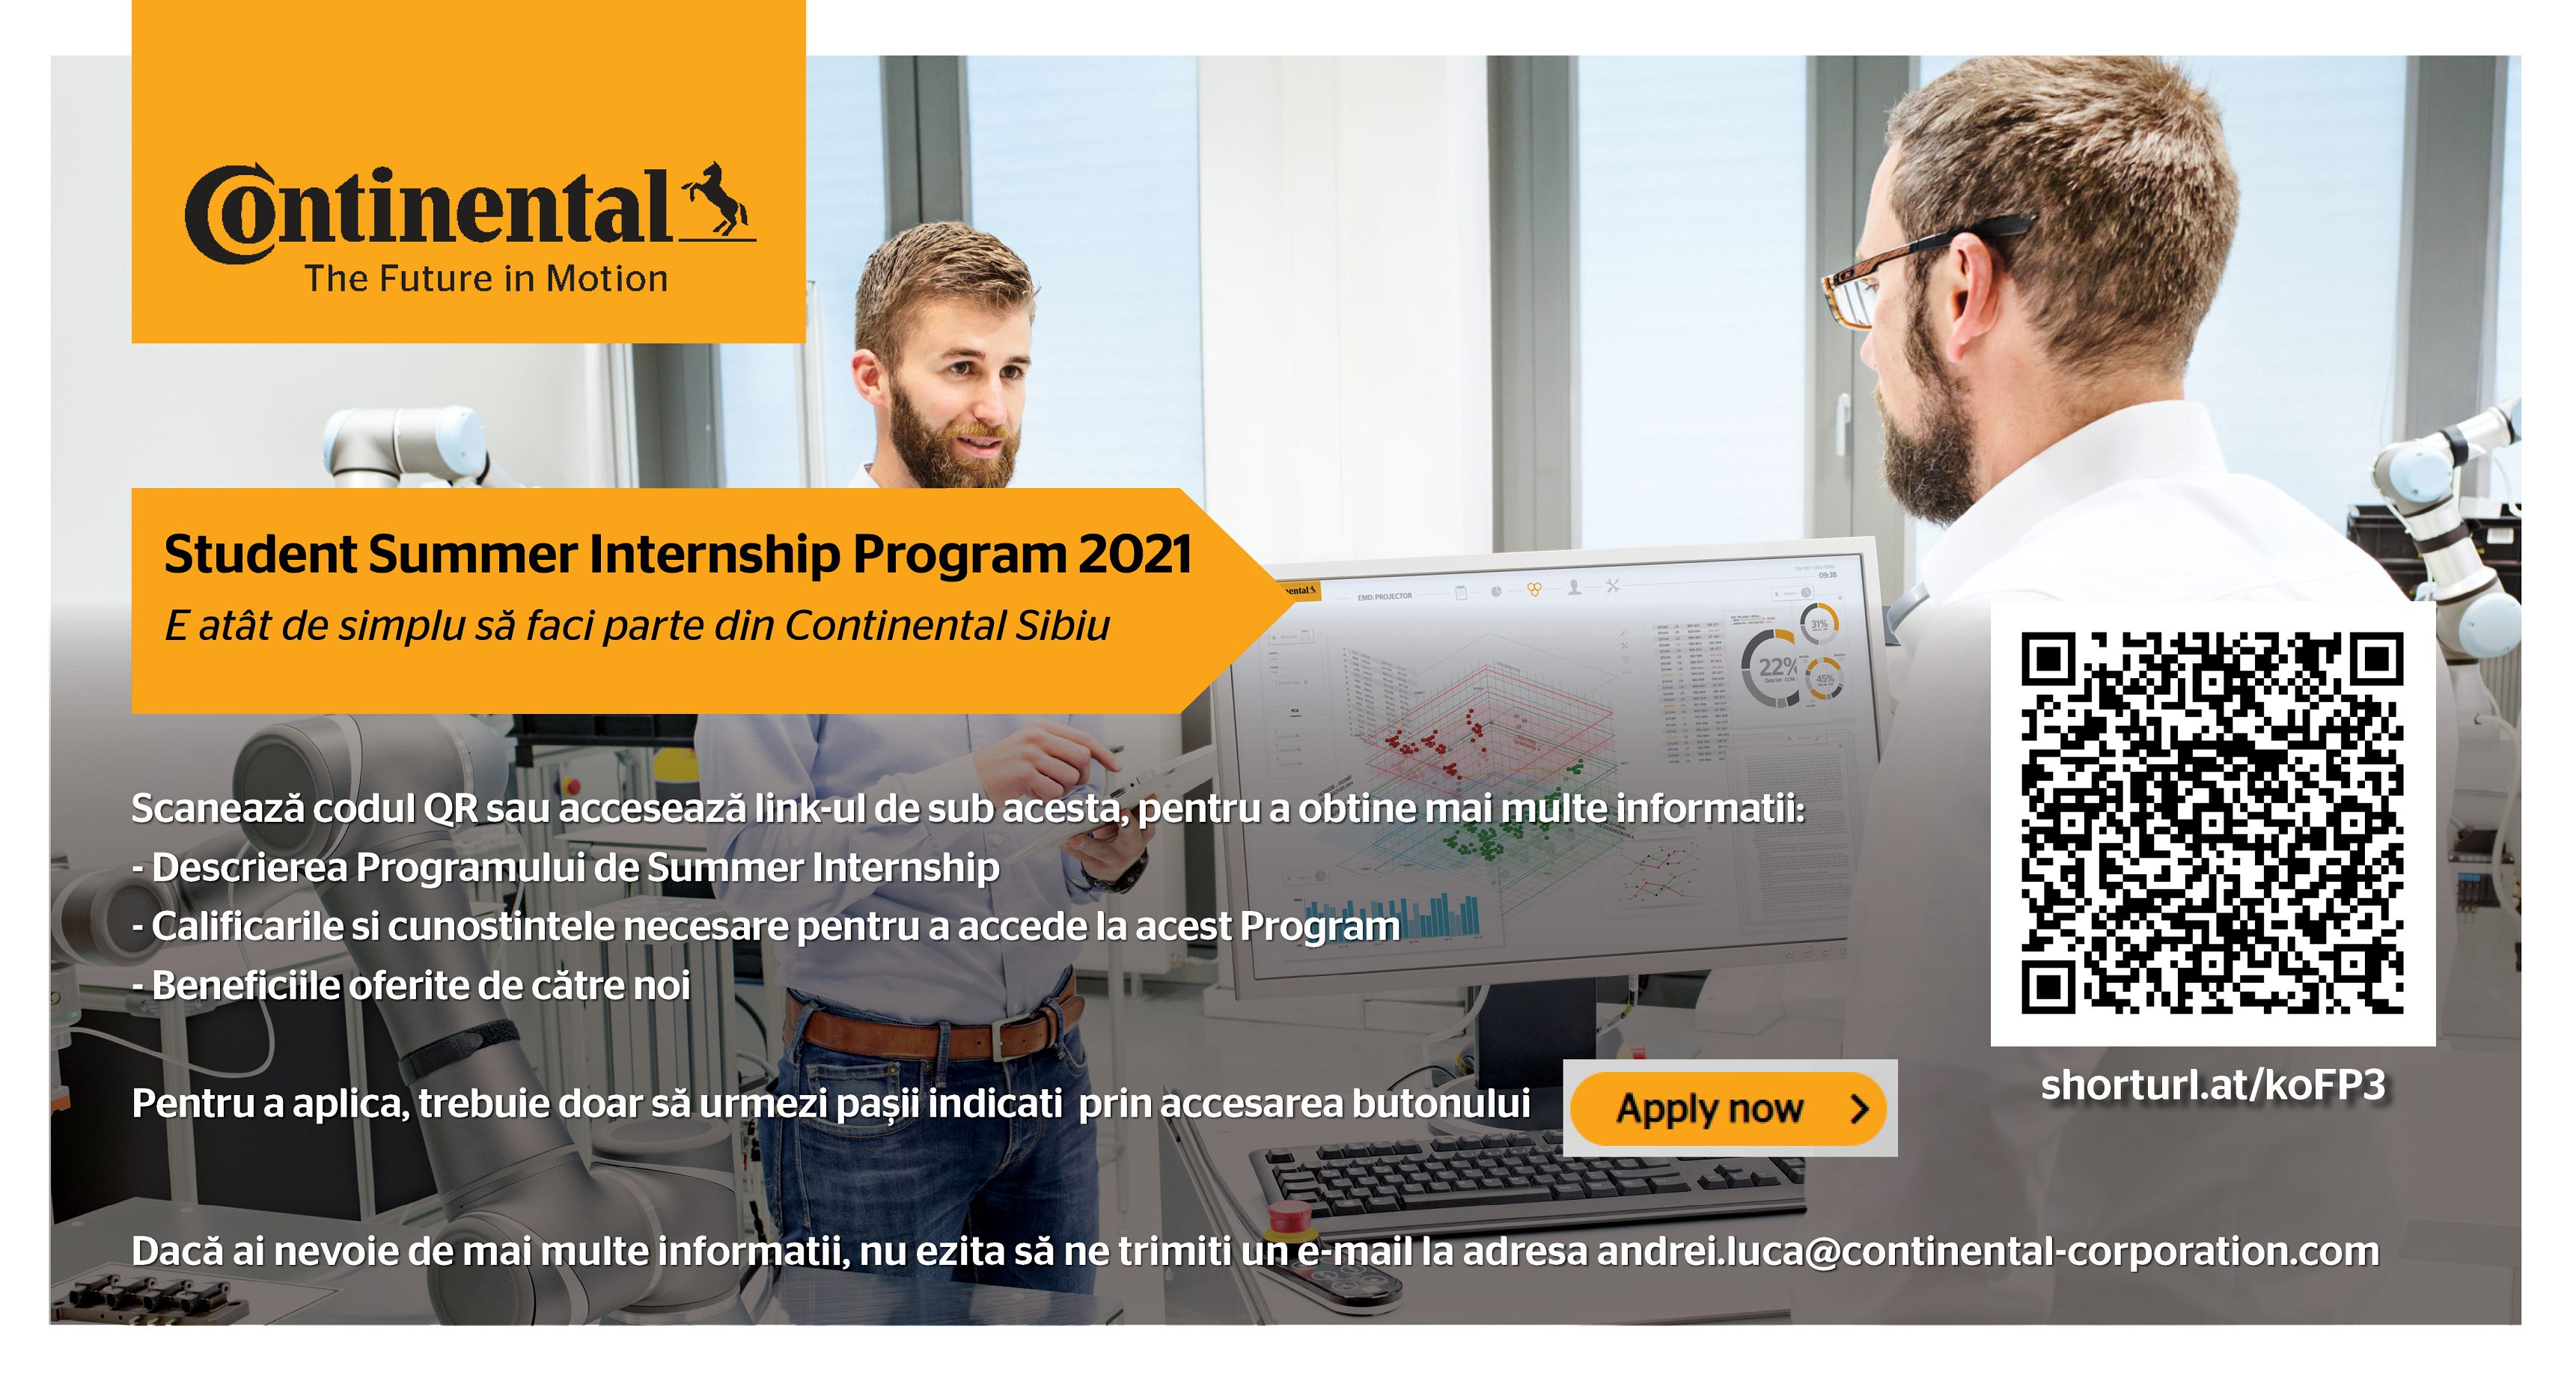 Continental Summer Internship Program 2021